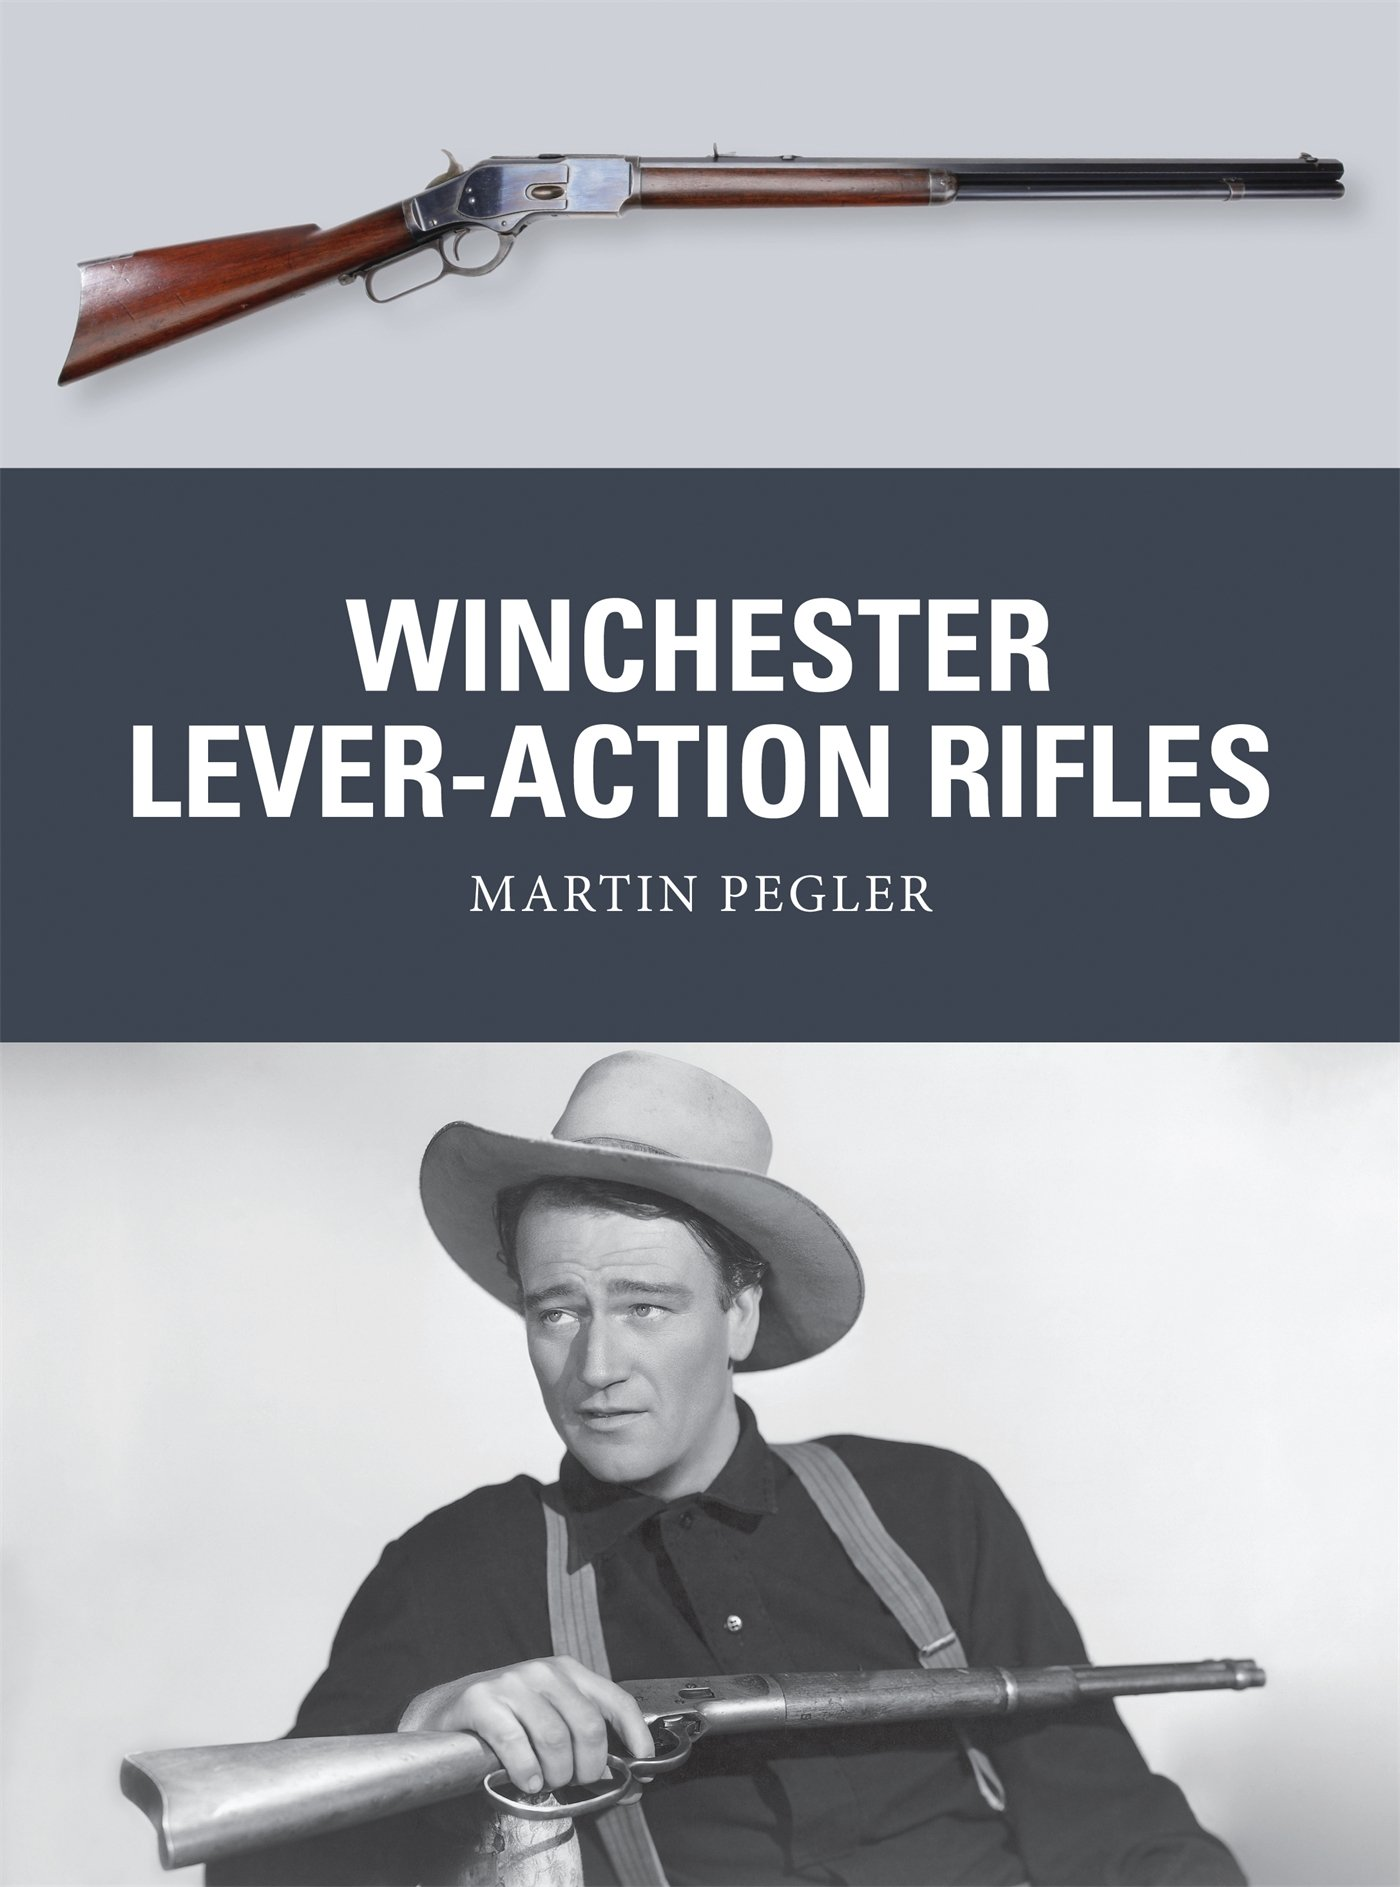 Winchester Lever Action Rifles Weapon Martin